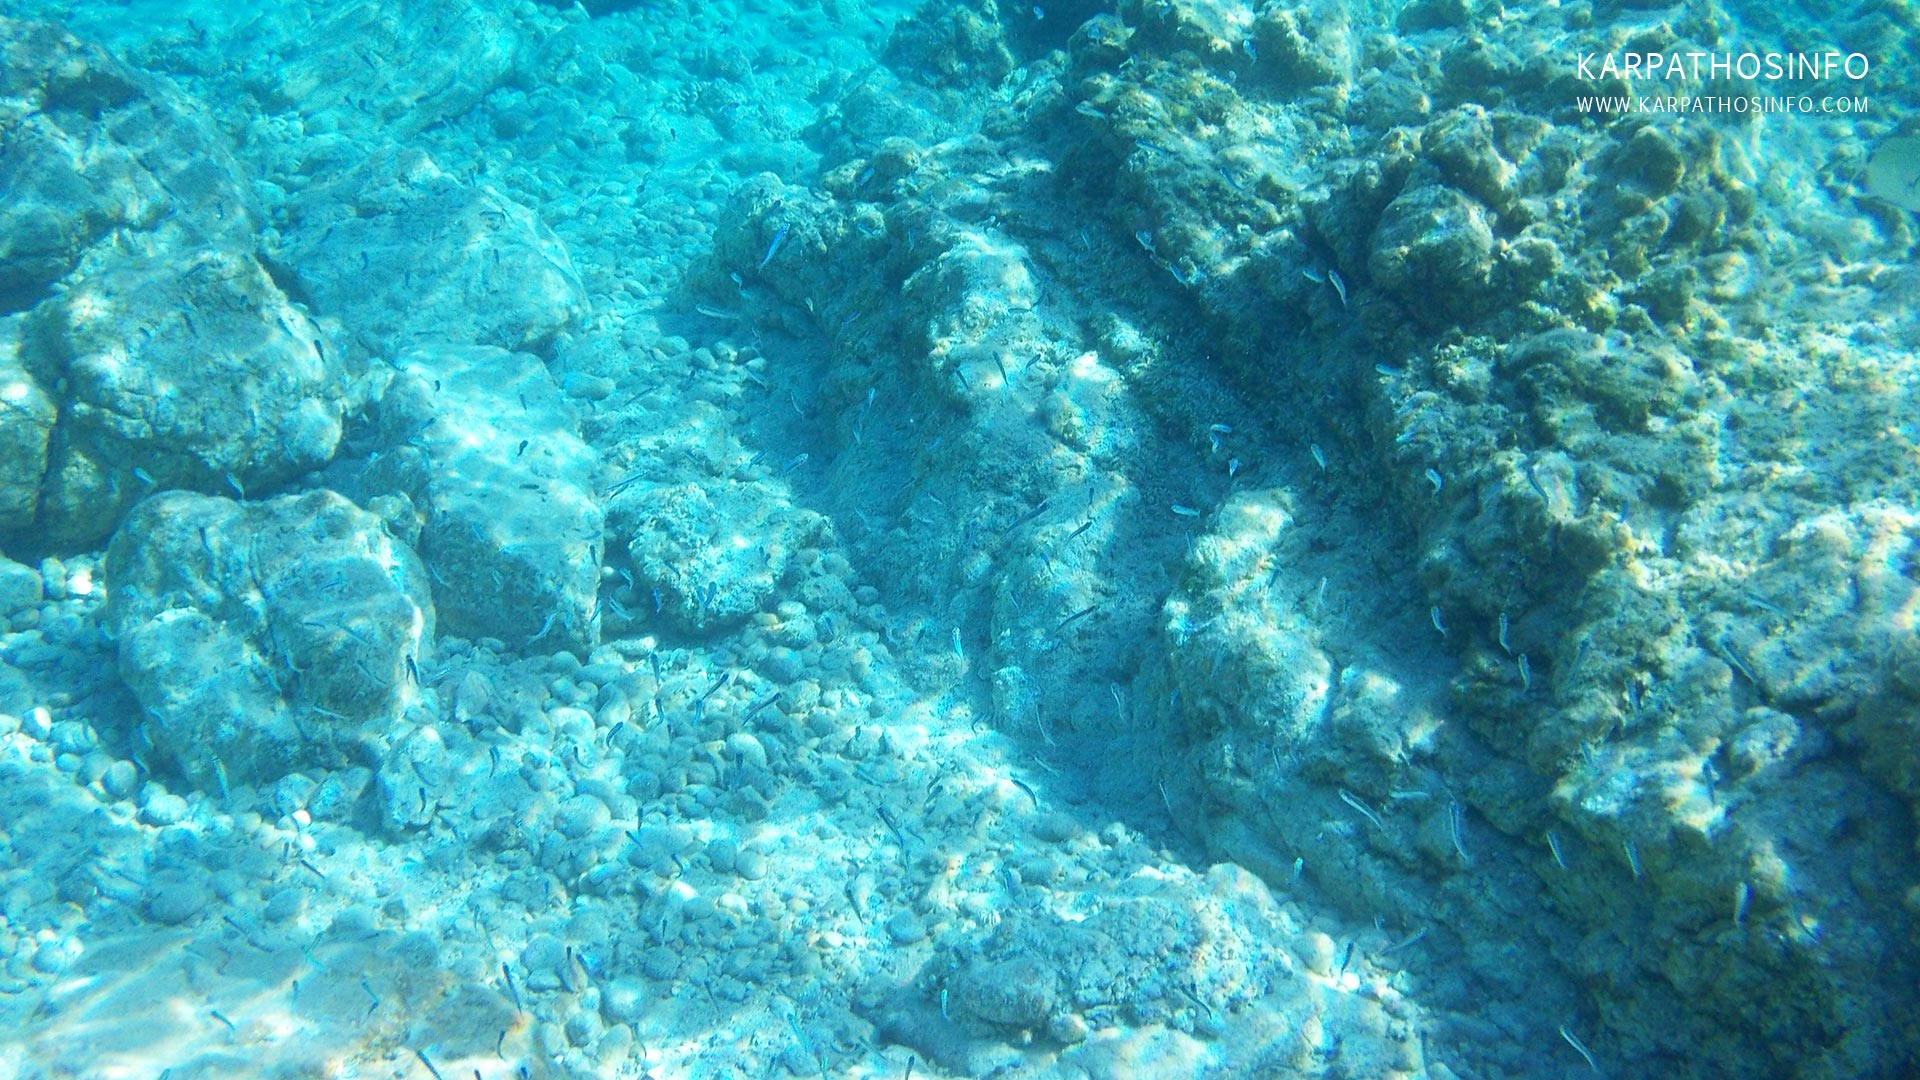 images/slider/diving-snorkeling-in-karpathos-island-greece.jpg